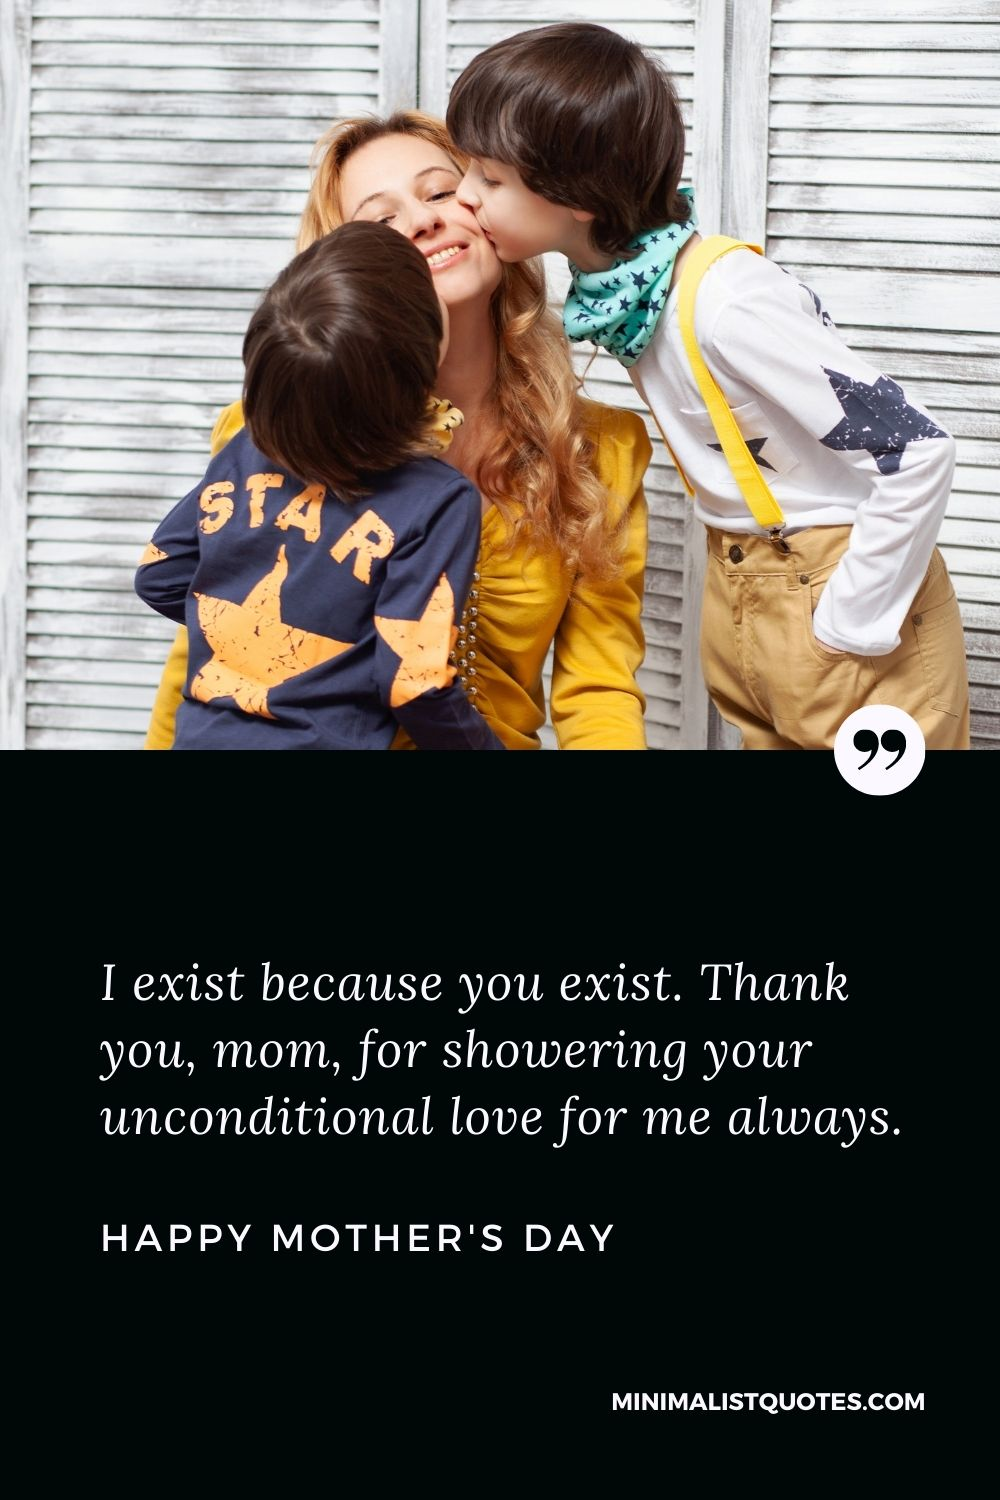 Mother's Day wish, message & wish with HD image: I exist because you exist. Thank you, mom, for showering your unconditional love for me always.Happy Mother's Day!